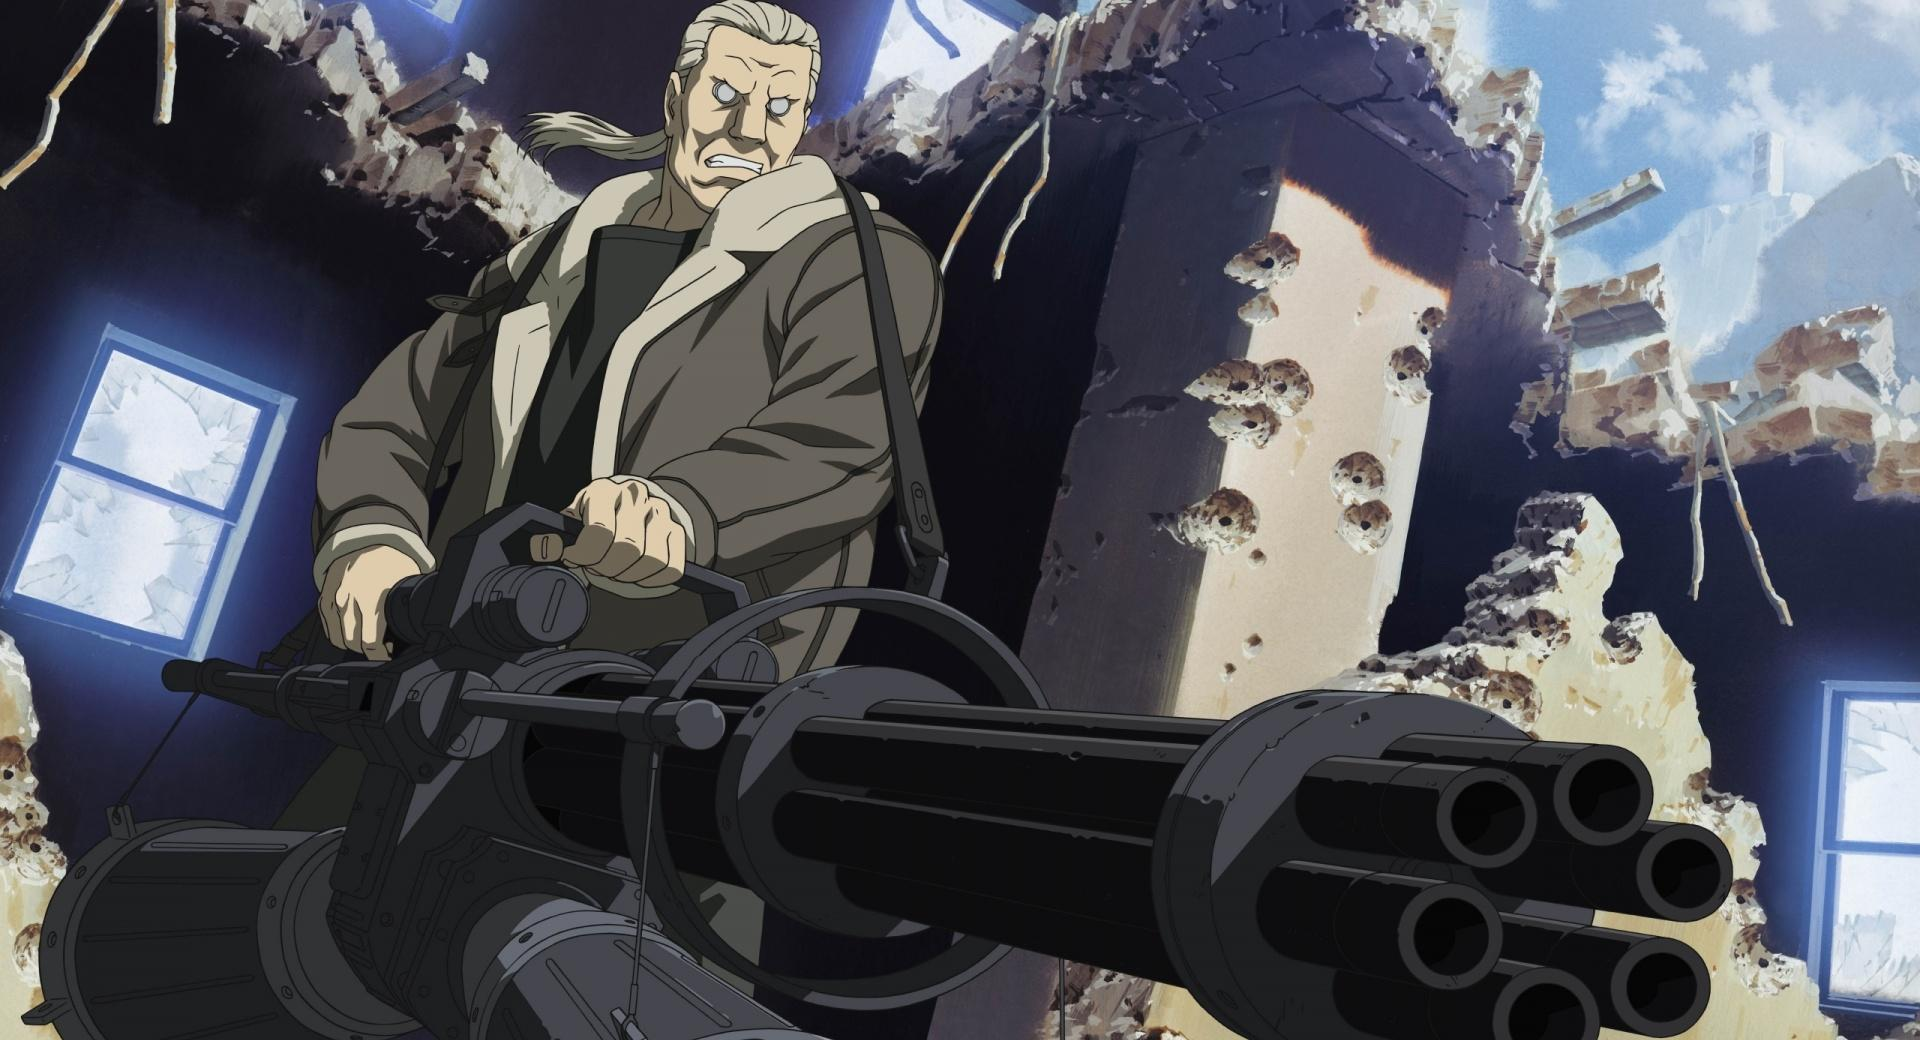 Ghost In The Shell Heavy Weapon wallpapers HD quality